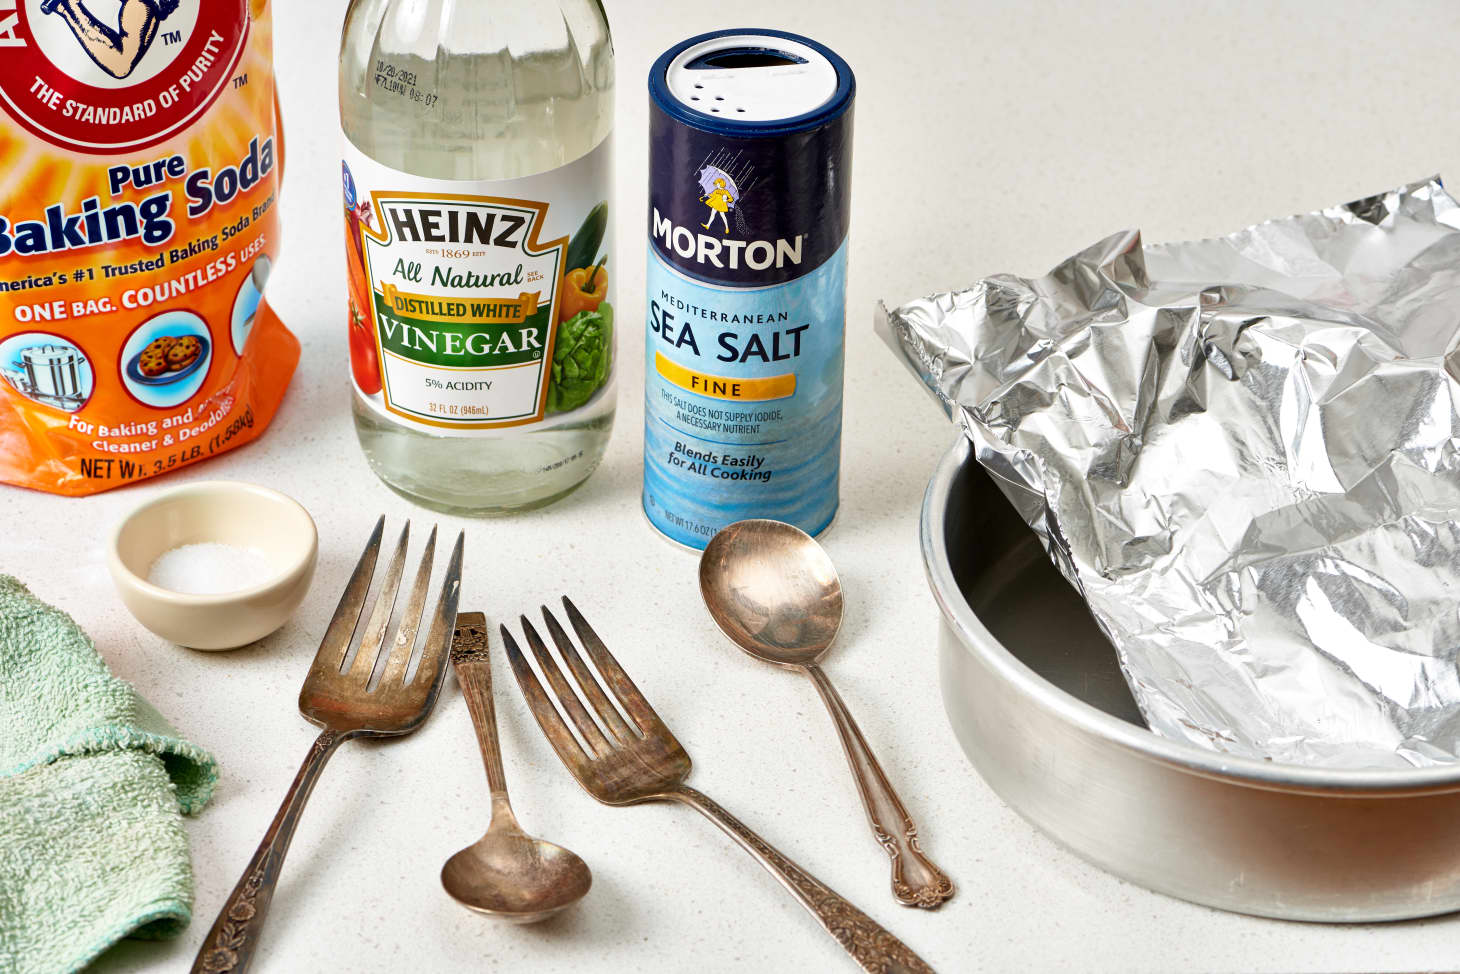 The Best Way to Clean & Polish Silver - Baking Soda and Aluminum